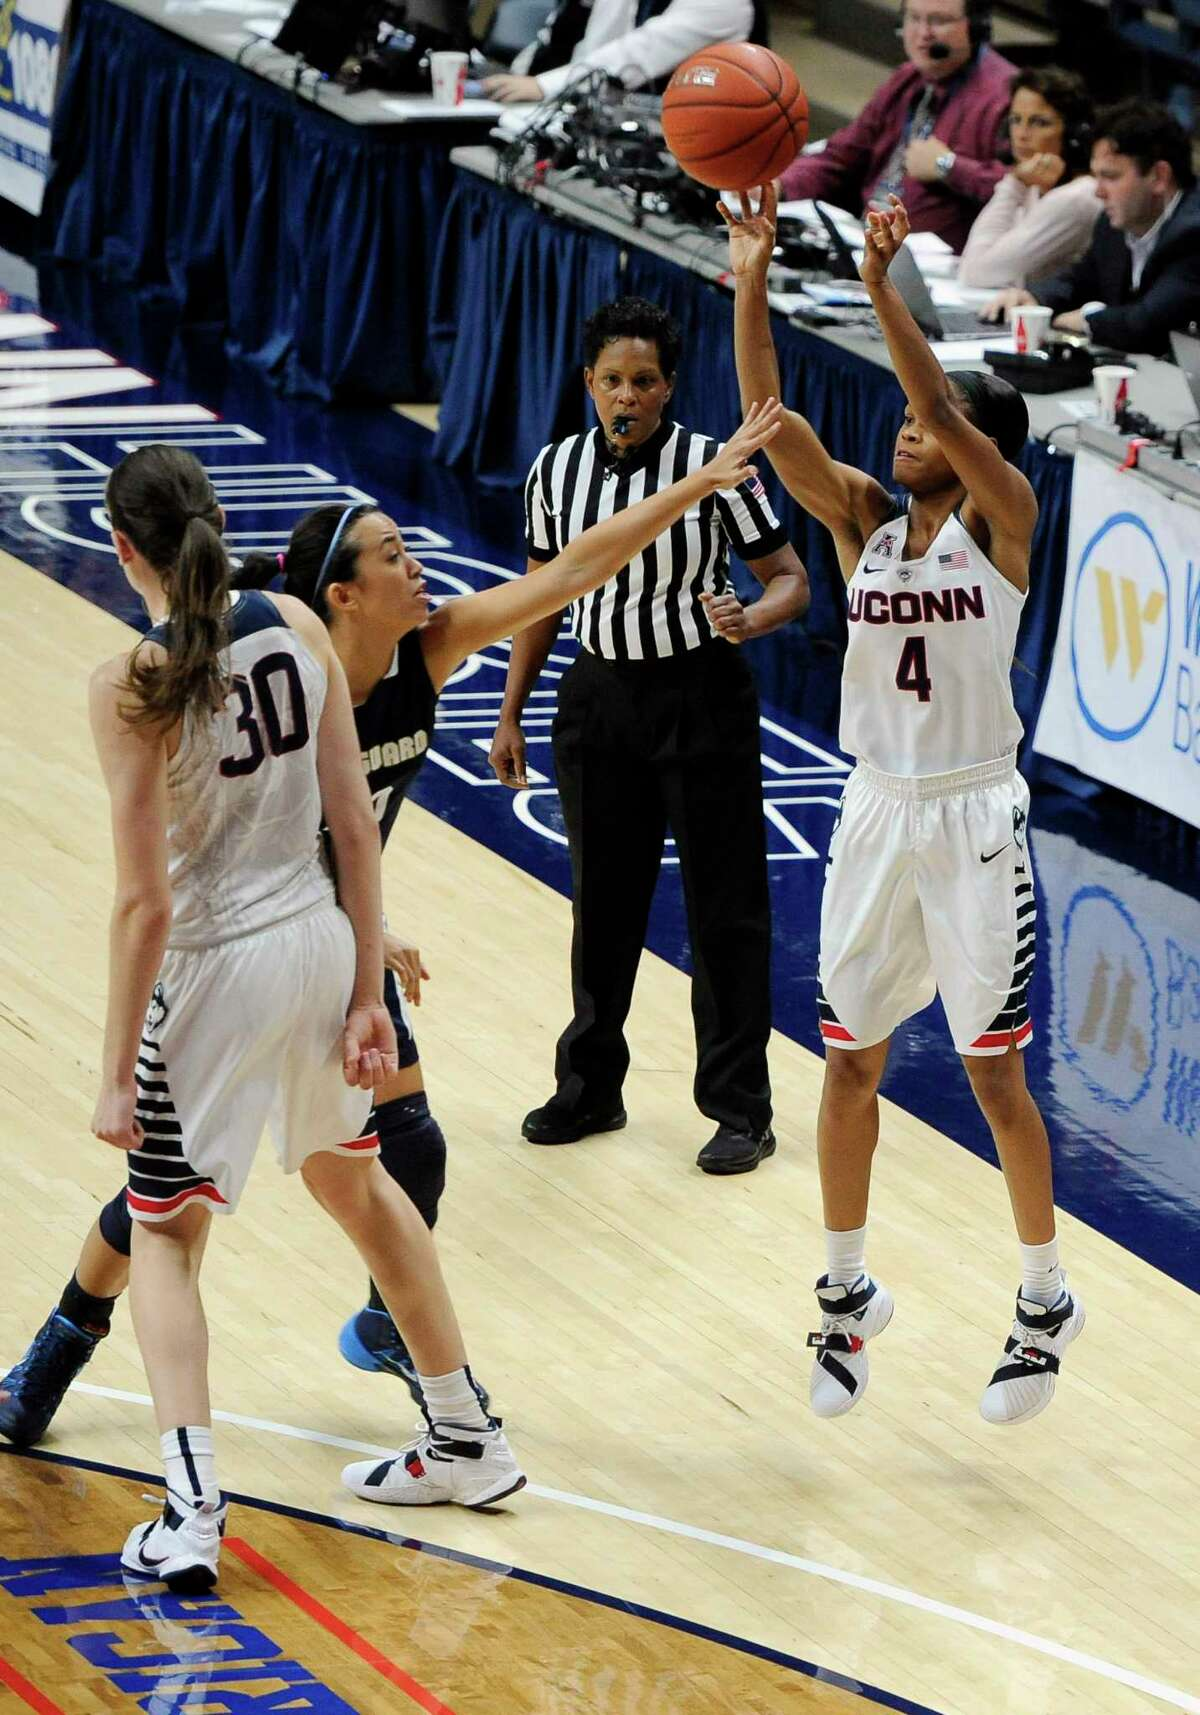 UConn's Moriah Jefferson, right, shoots a 3-point basket against Vanguard's Maya Kennedy as Breanna Stewart, left, defends during the second half Sunday.